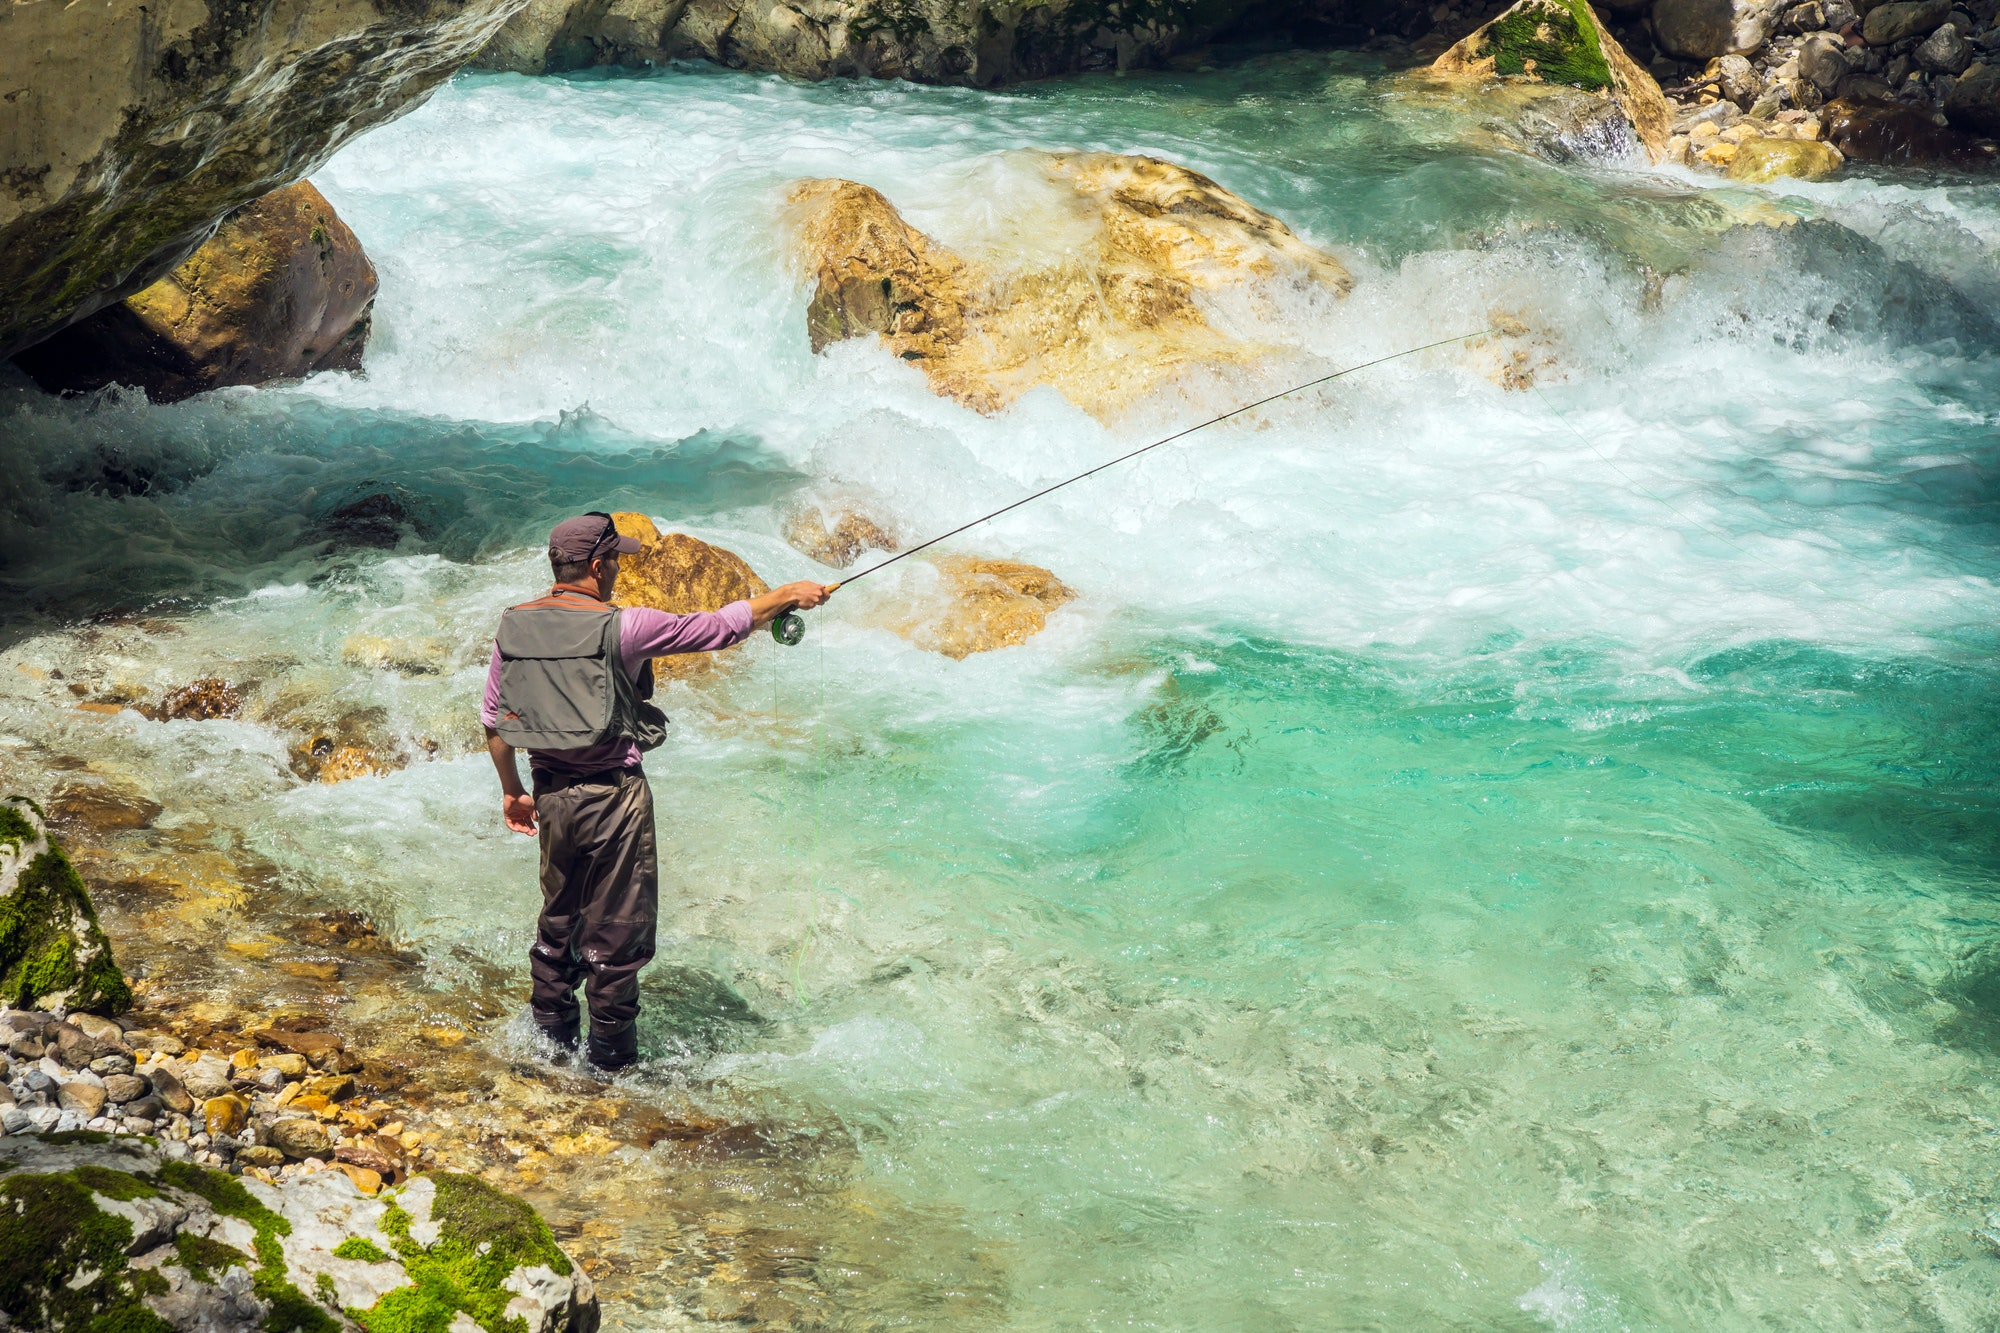 A fly fisherman fishing in a river